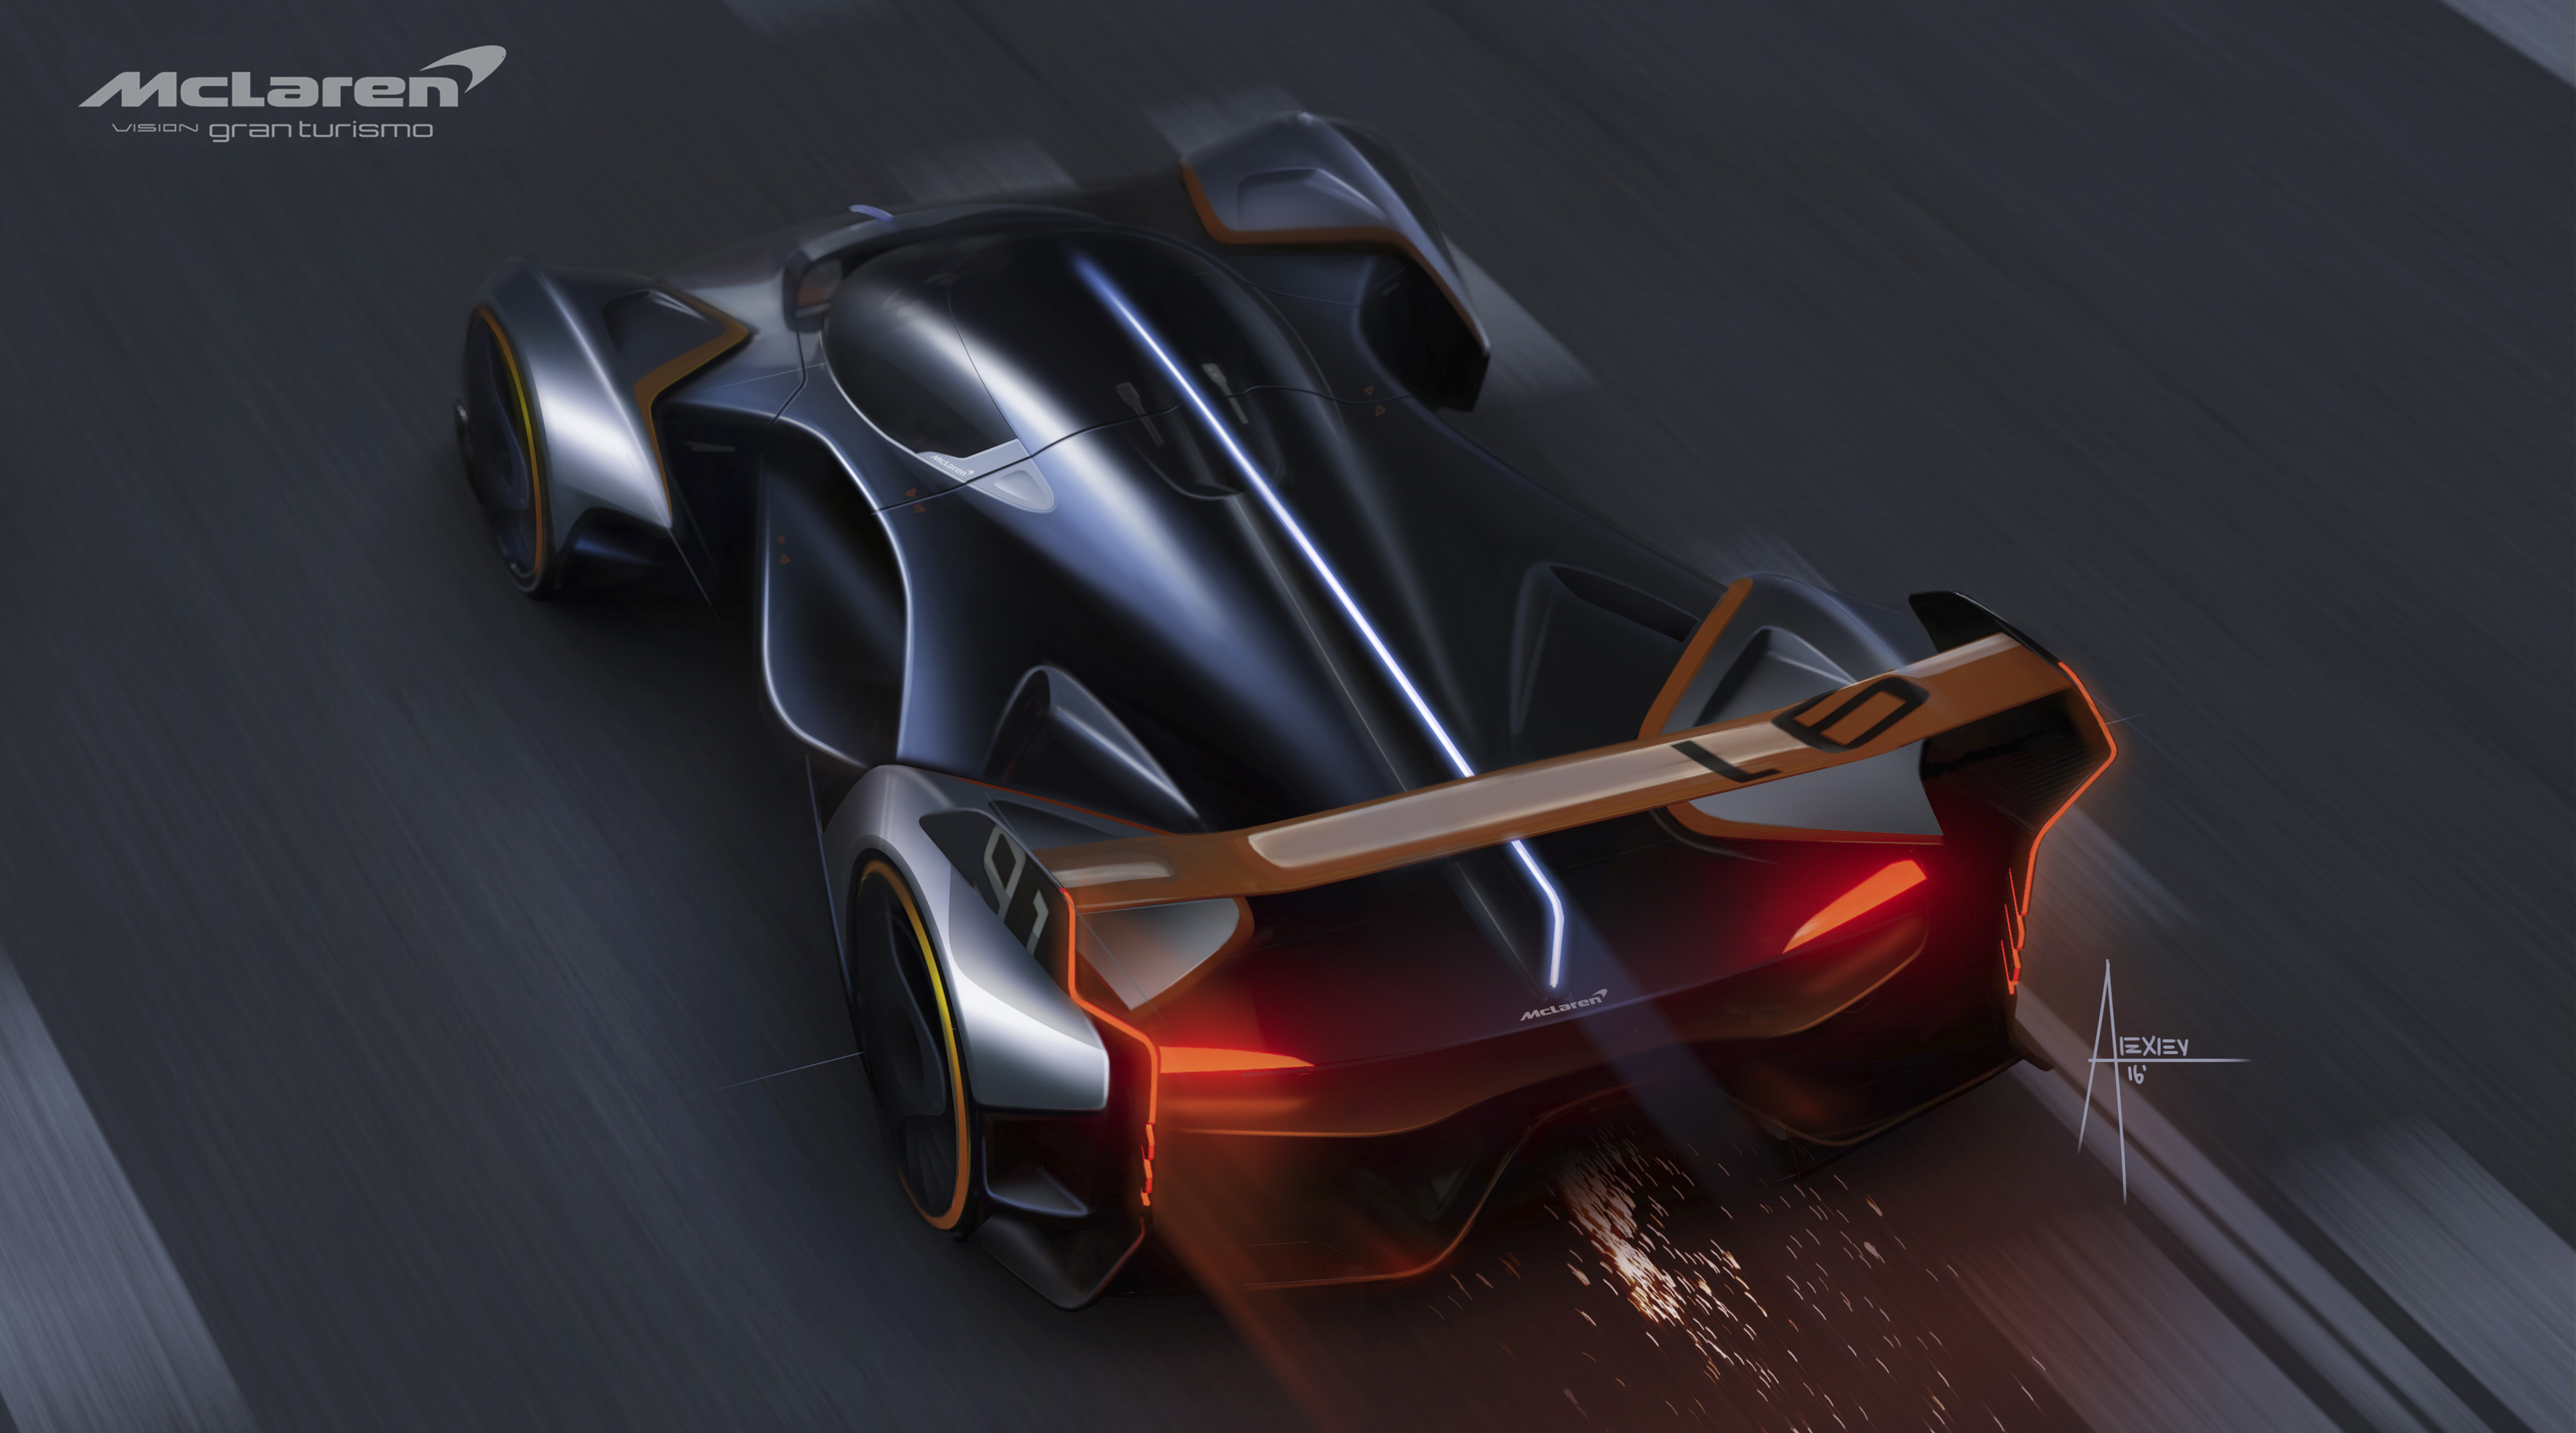 McLaren Ultimate Vision Gran Turismo concept car revealed